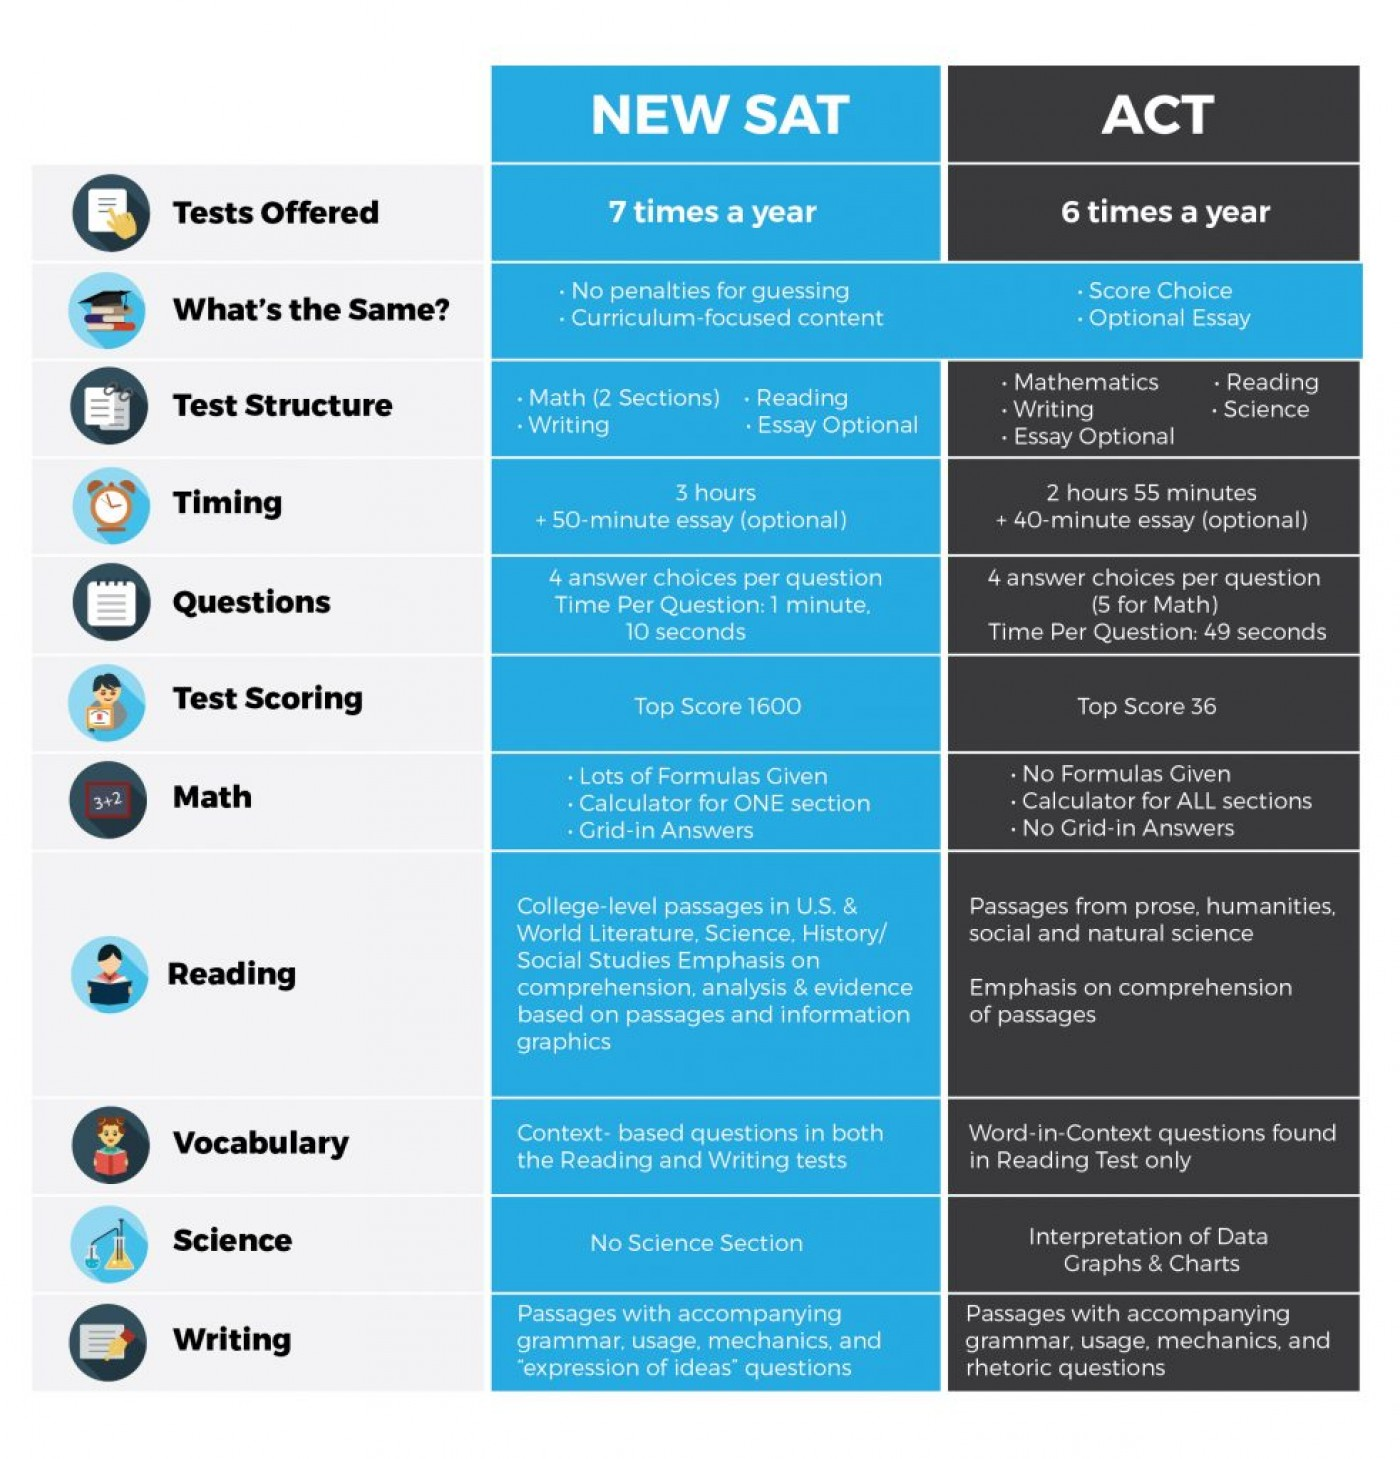 004 New Sat Vs Act 982x1024 Essay Example Colleges That Fascinating Require College Board Schools 2019 1400